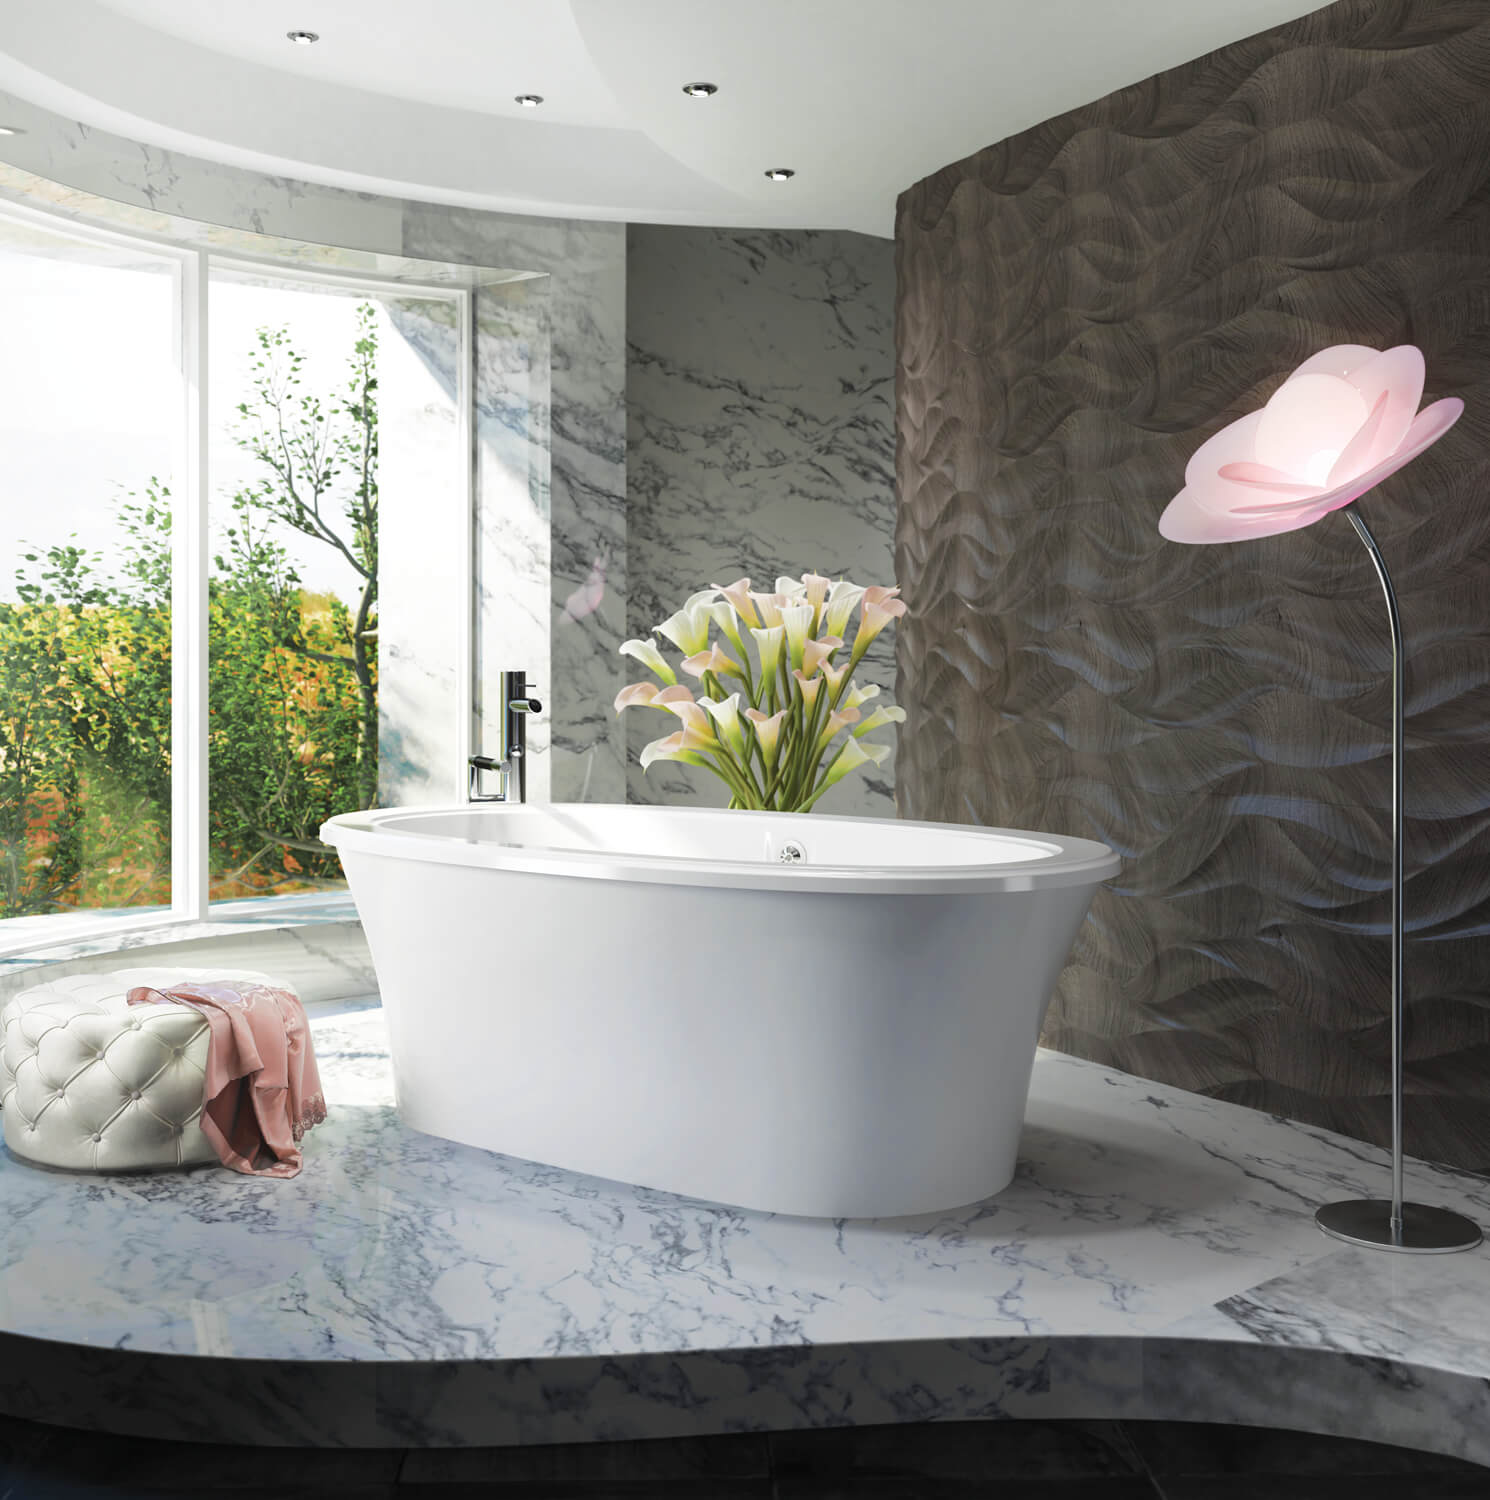 Bainultra Sanos 6636 freestanding air jet bathtub for your modern bathroom